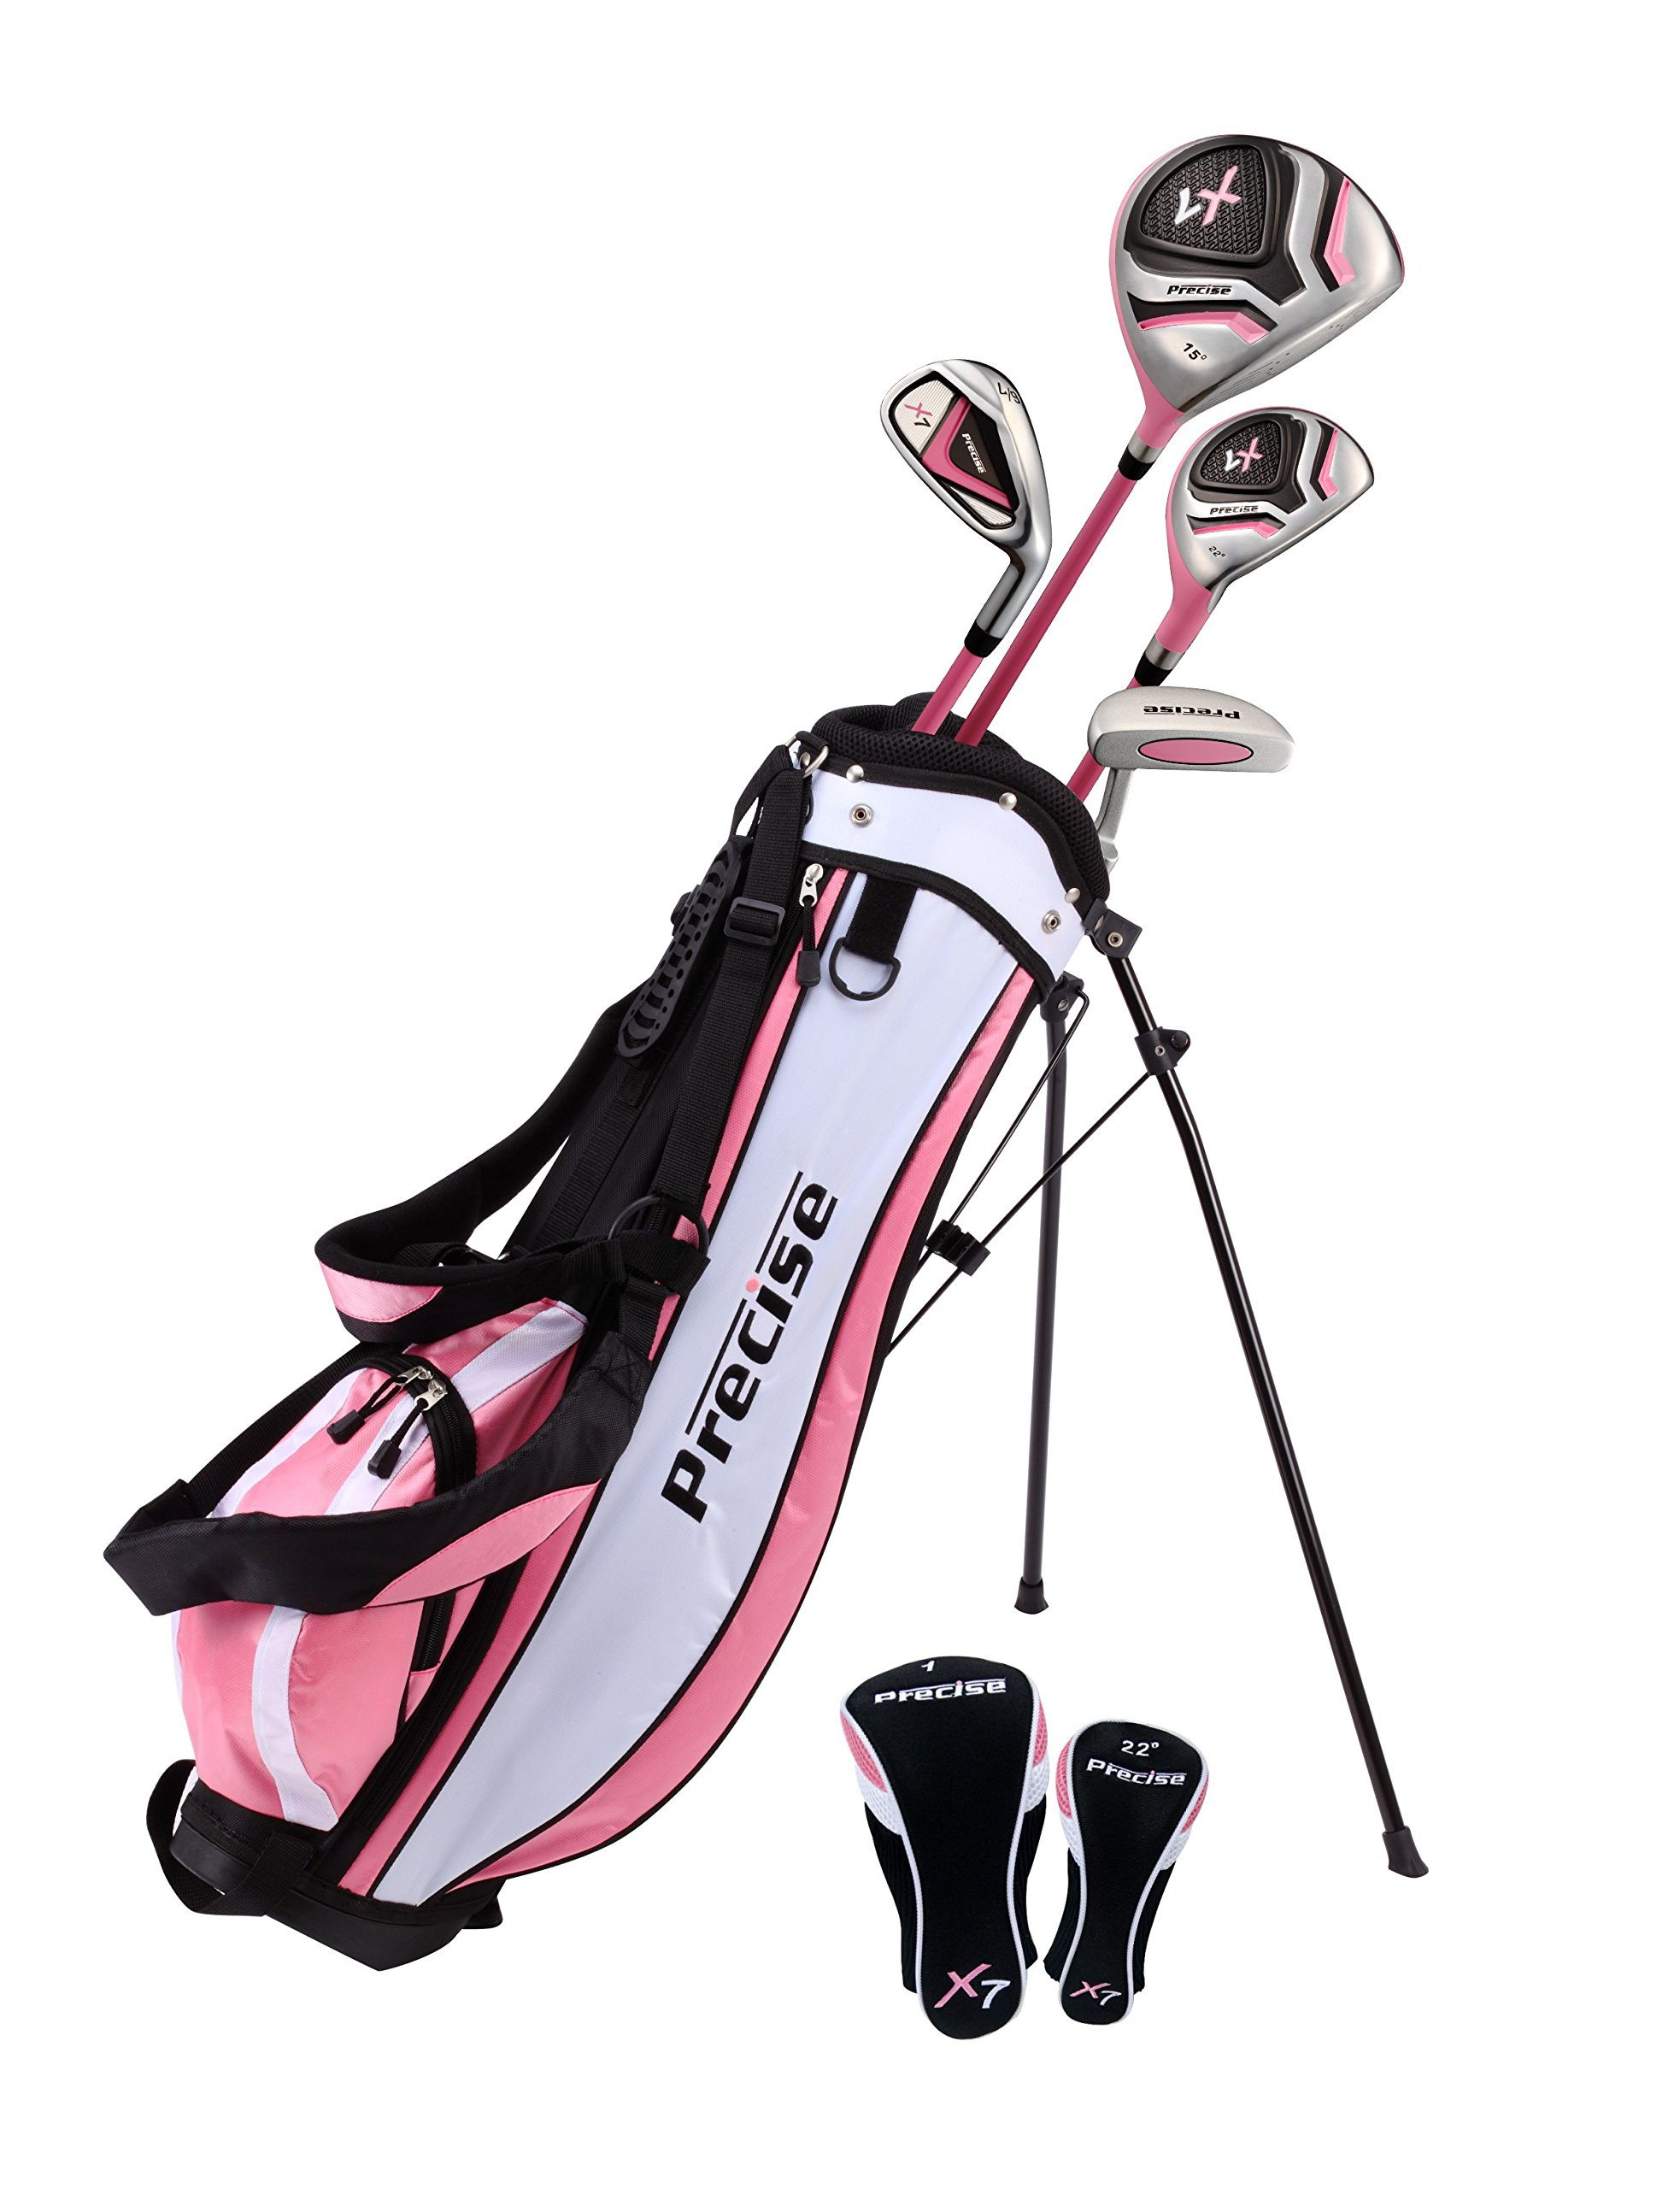 Distinctive Girls Right Handed Pink Junior Golf Club Set for Age 3 to 5 (Height 3' to 3'8'') Set Includes: Driver (15''), Hybrid Wood (22, 7 Iron, Putter, Bonus Stand Bag & 2 Headcovers by Precise